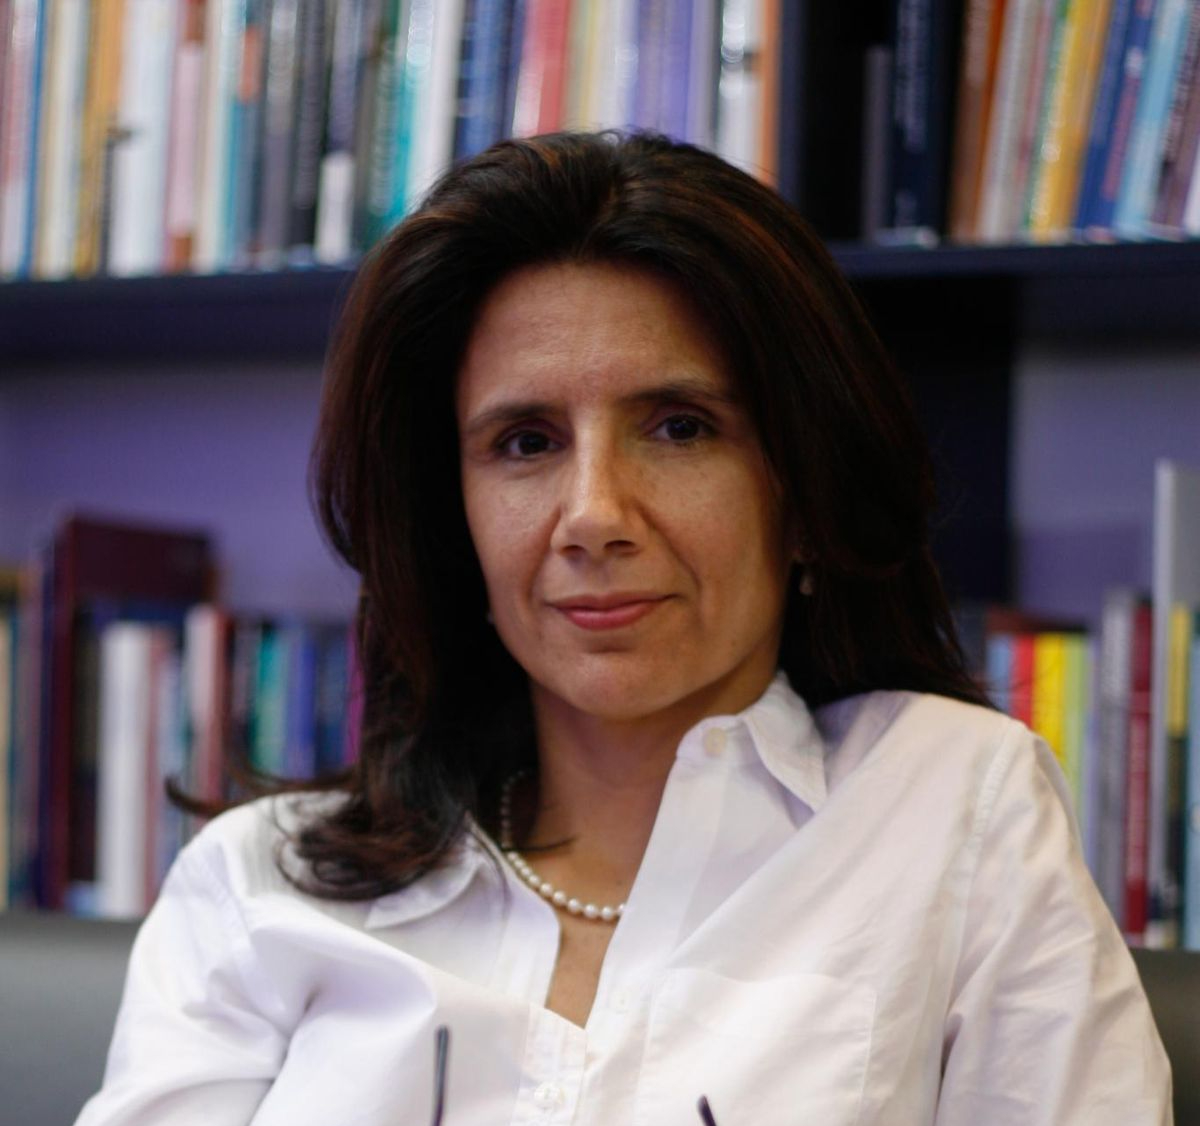 Interview with departing Board Member- Ana Toni